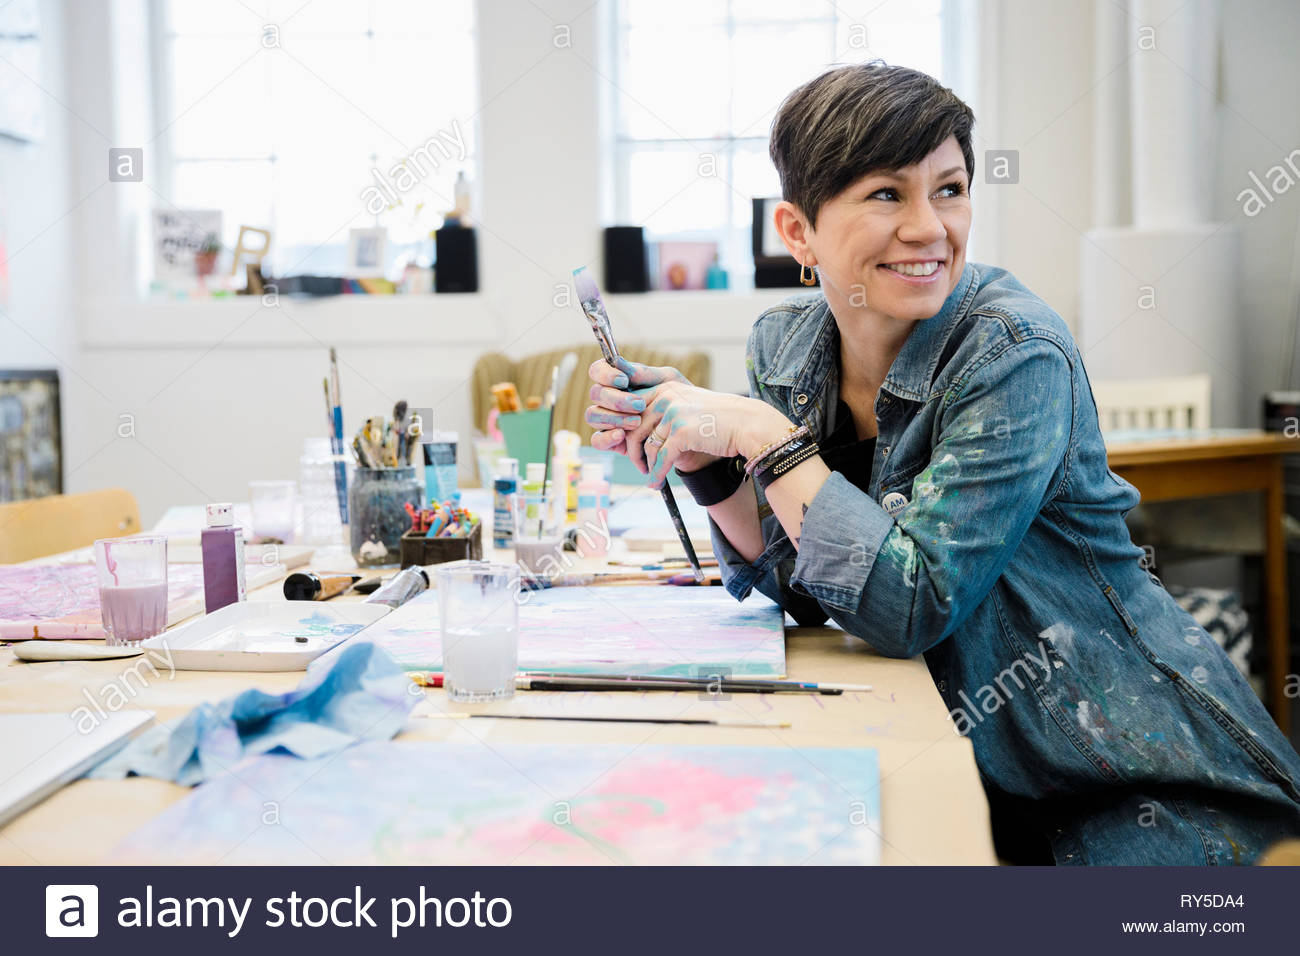 Female artist painting in studio Photo Stock